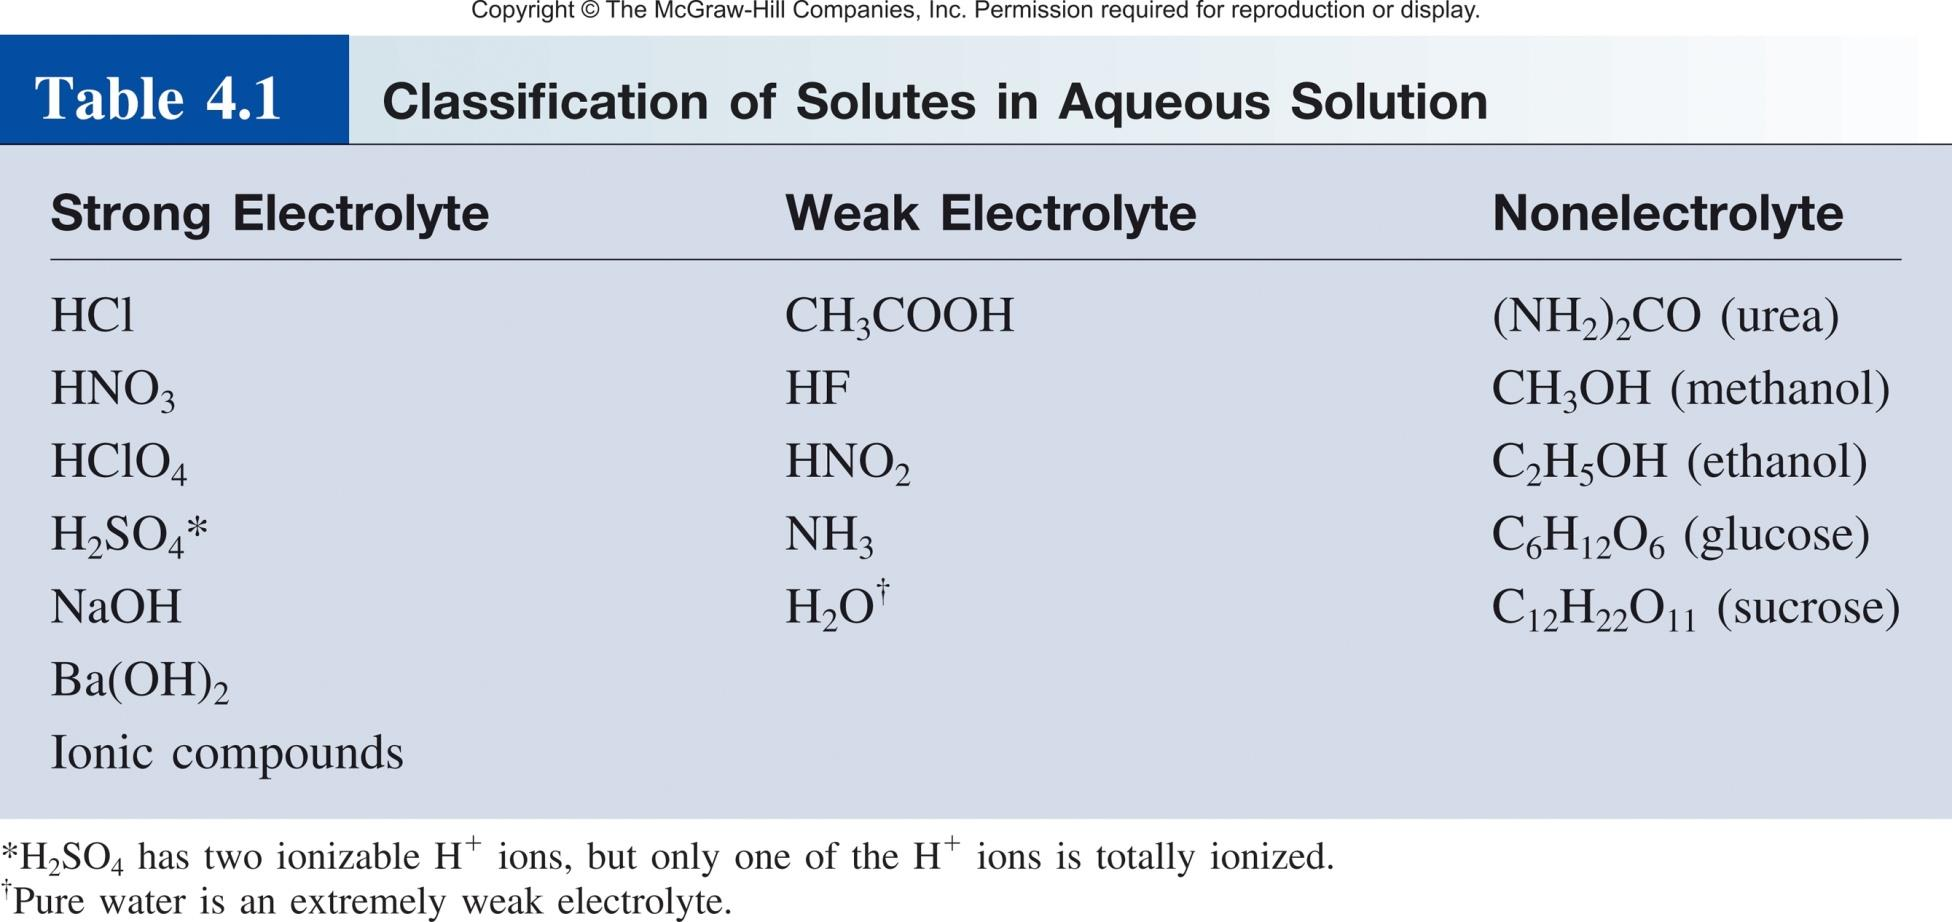 Nonelectrolyte does not conduct electricity?